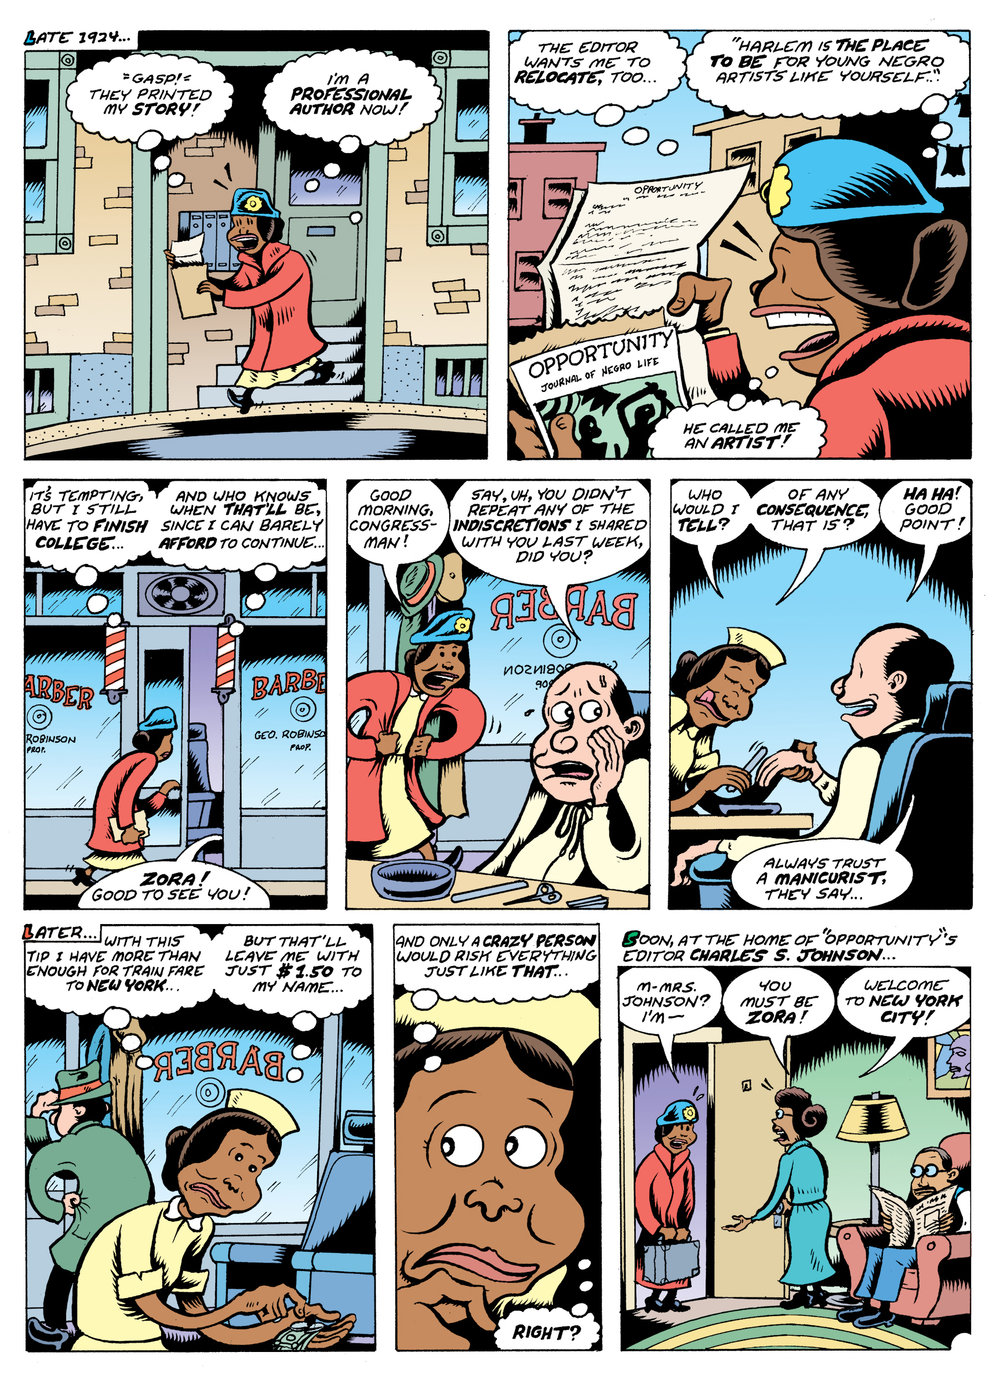 Fire!! The Zora Neale Hurston Story by Peter Bagge